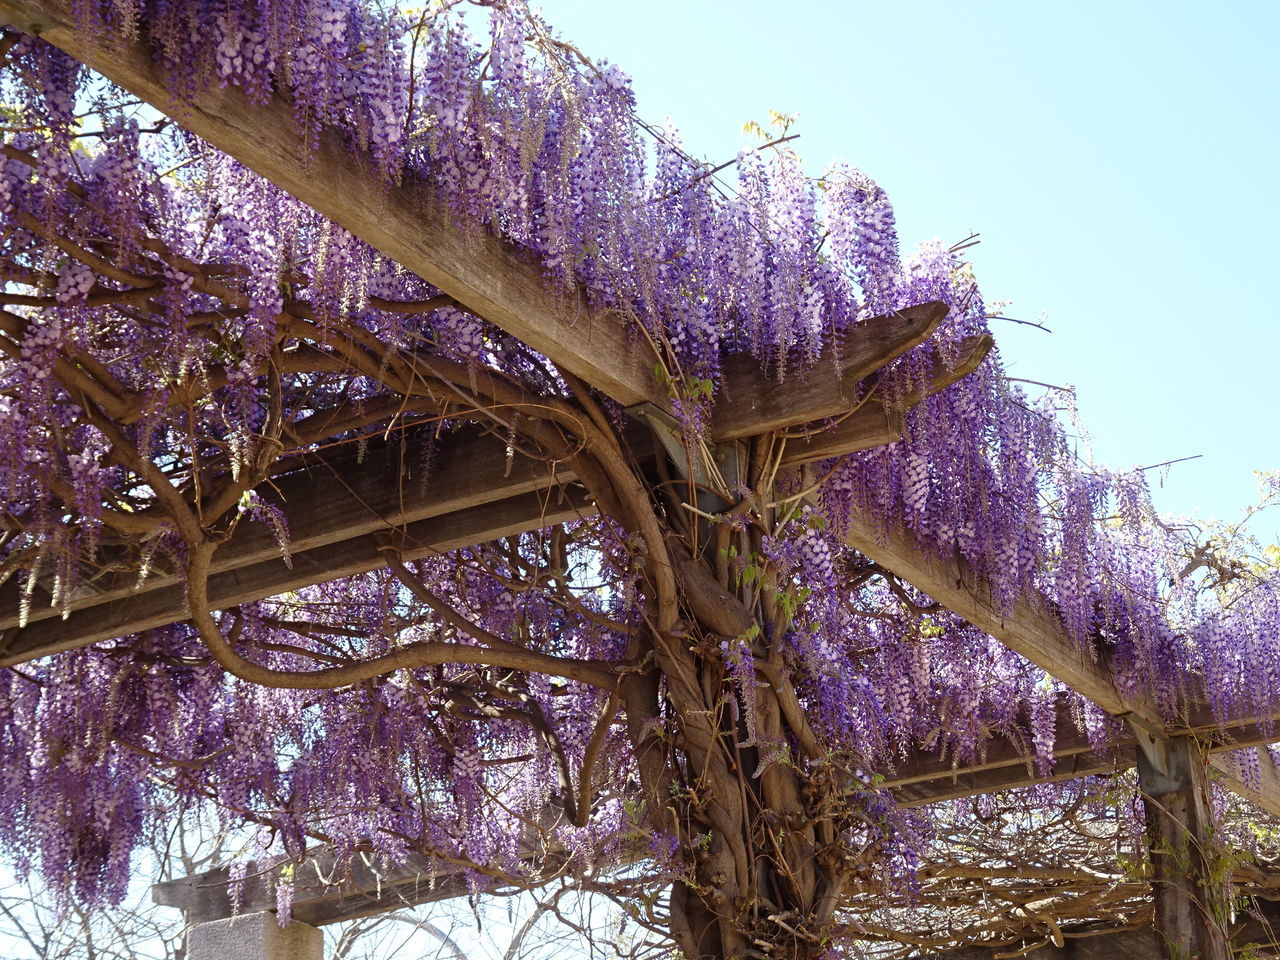 Wisteria pergola Beauty In Nature Branch Day Flower Fragility Nature No People Outdoors Pergola Purple Sky Springtime Tree Wisteria